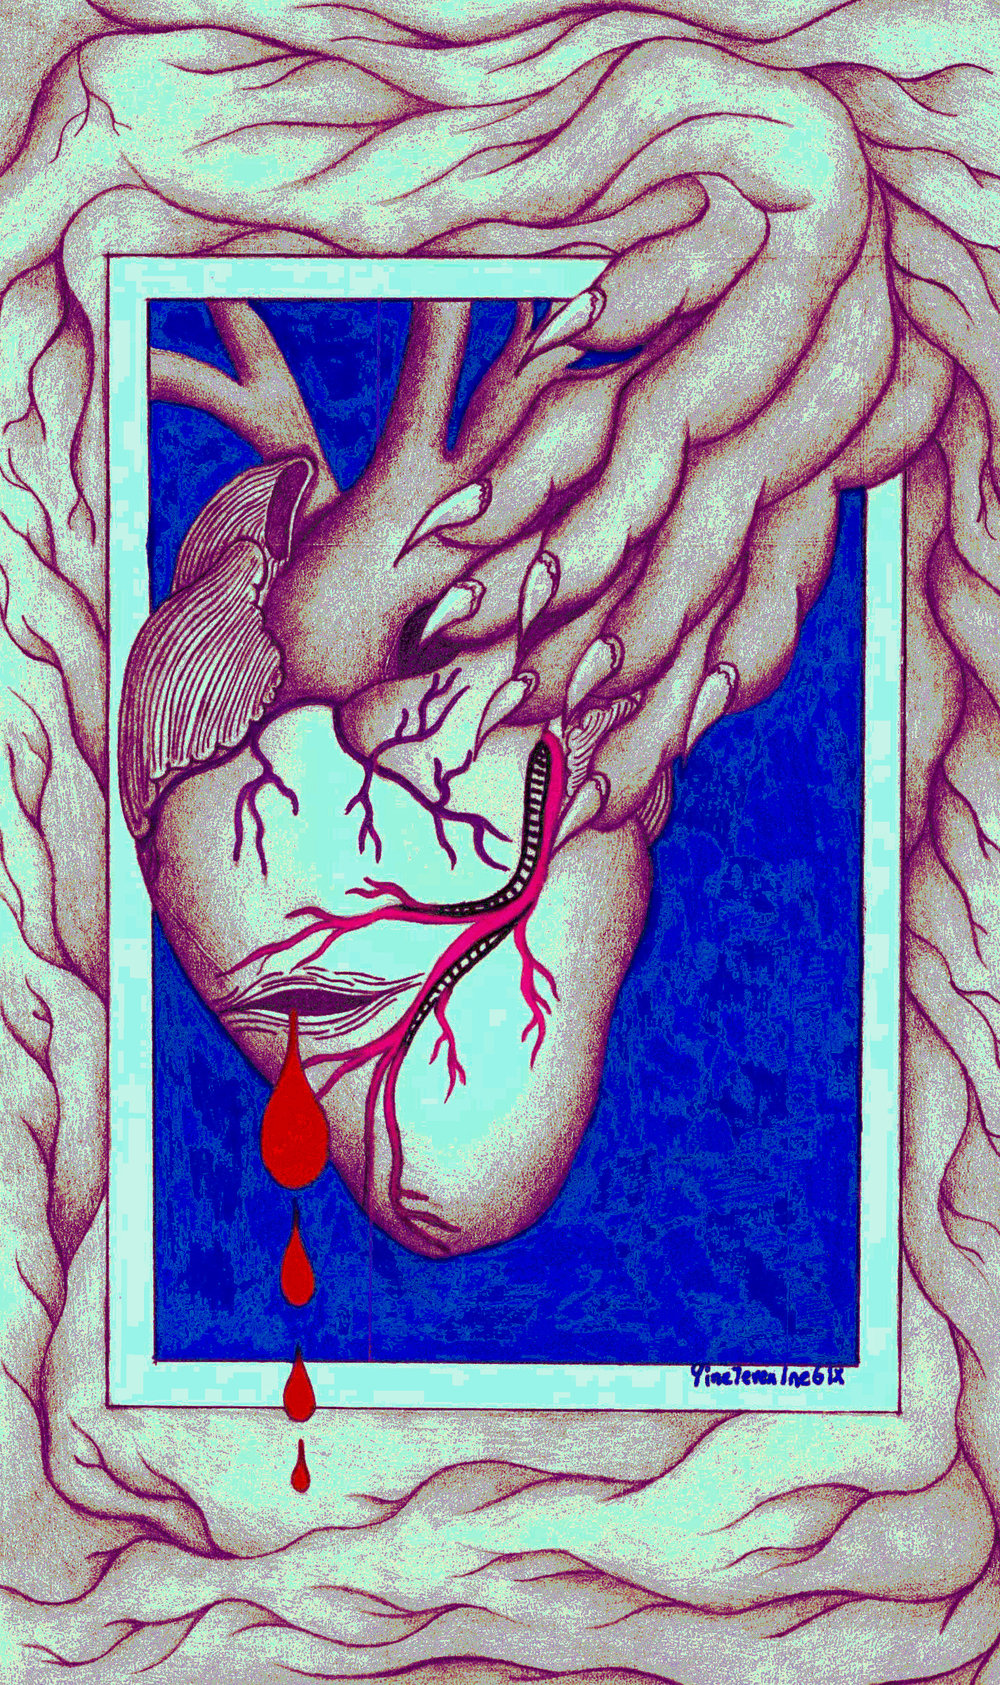 The Heart Born From The Frame